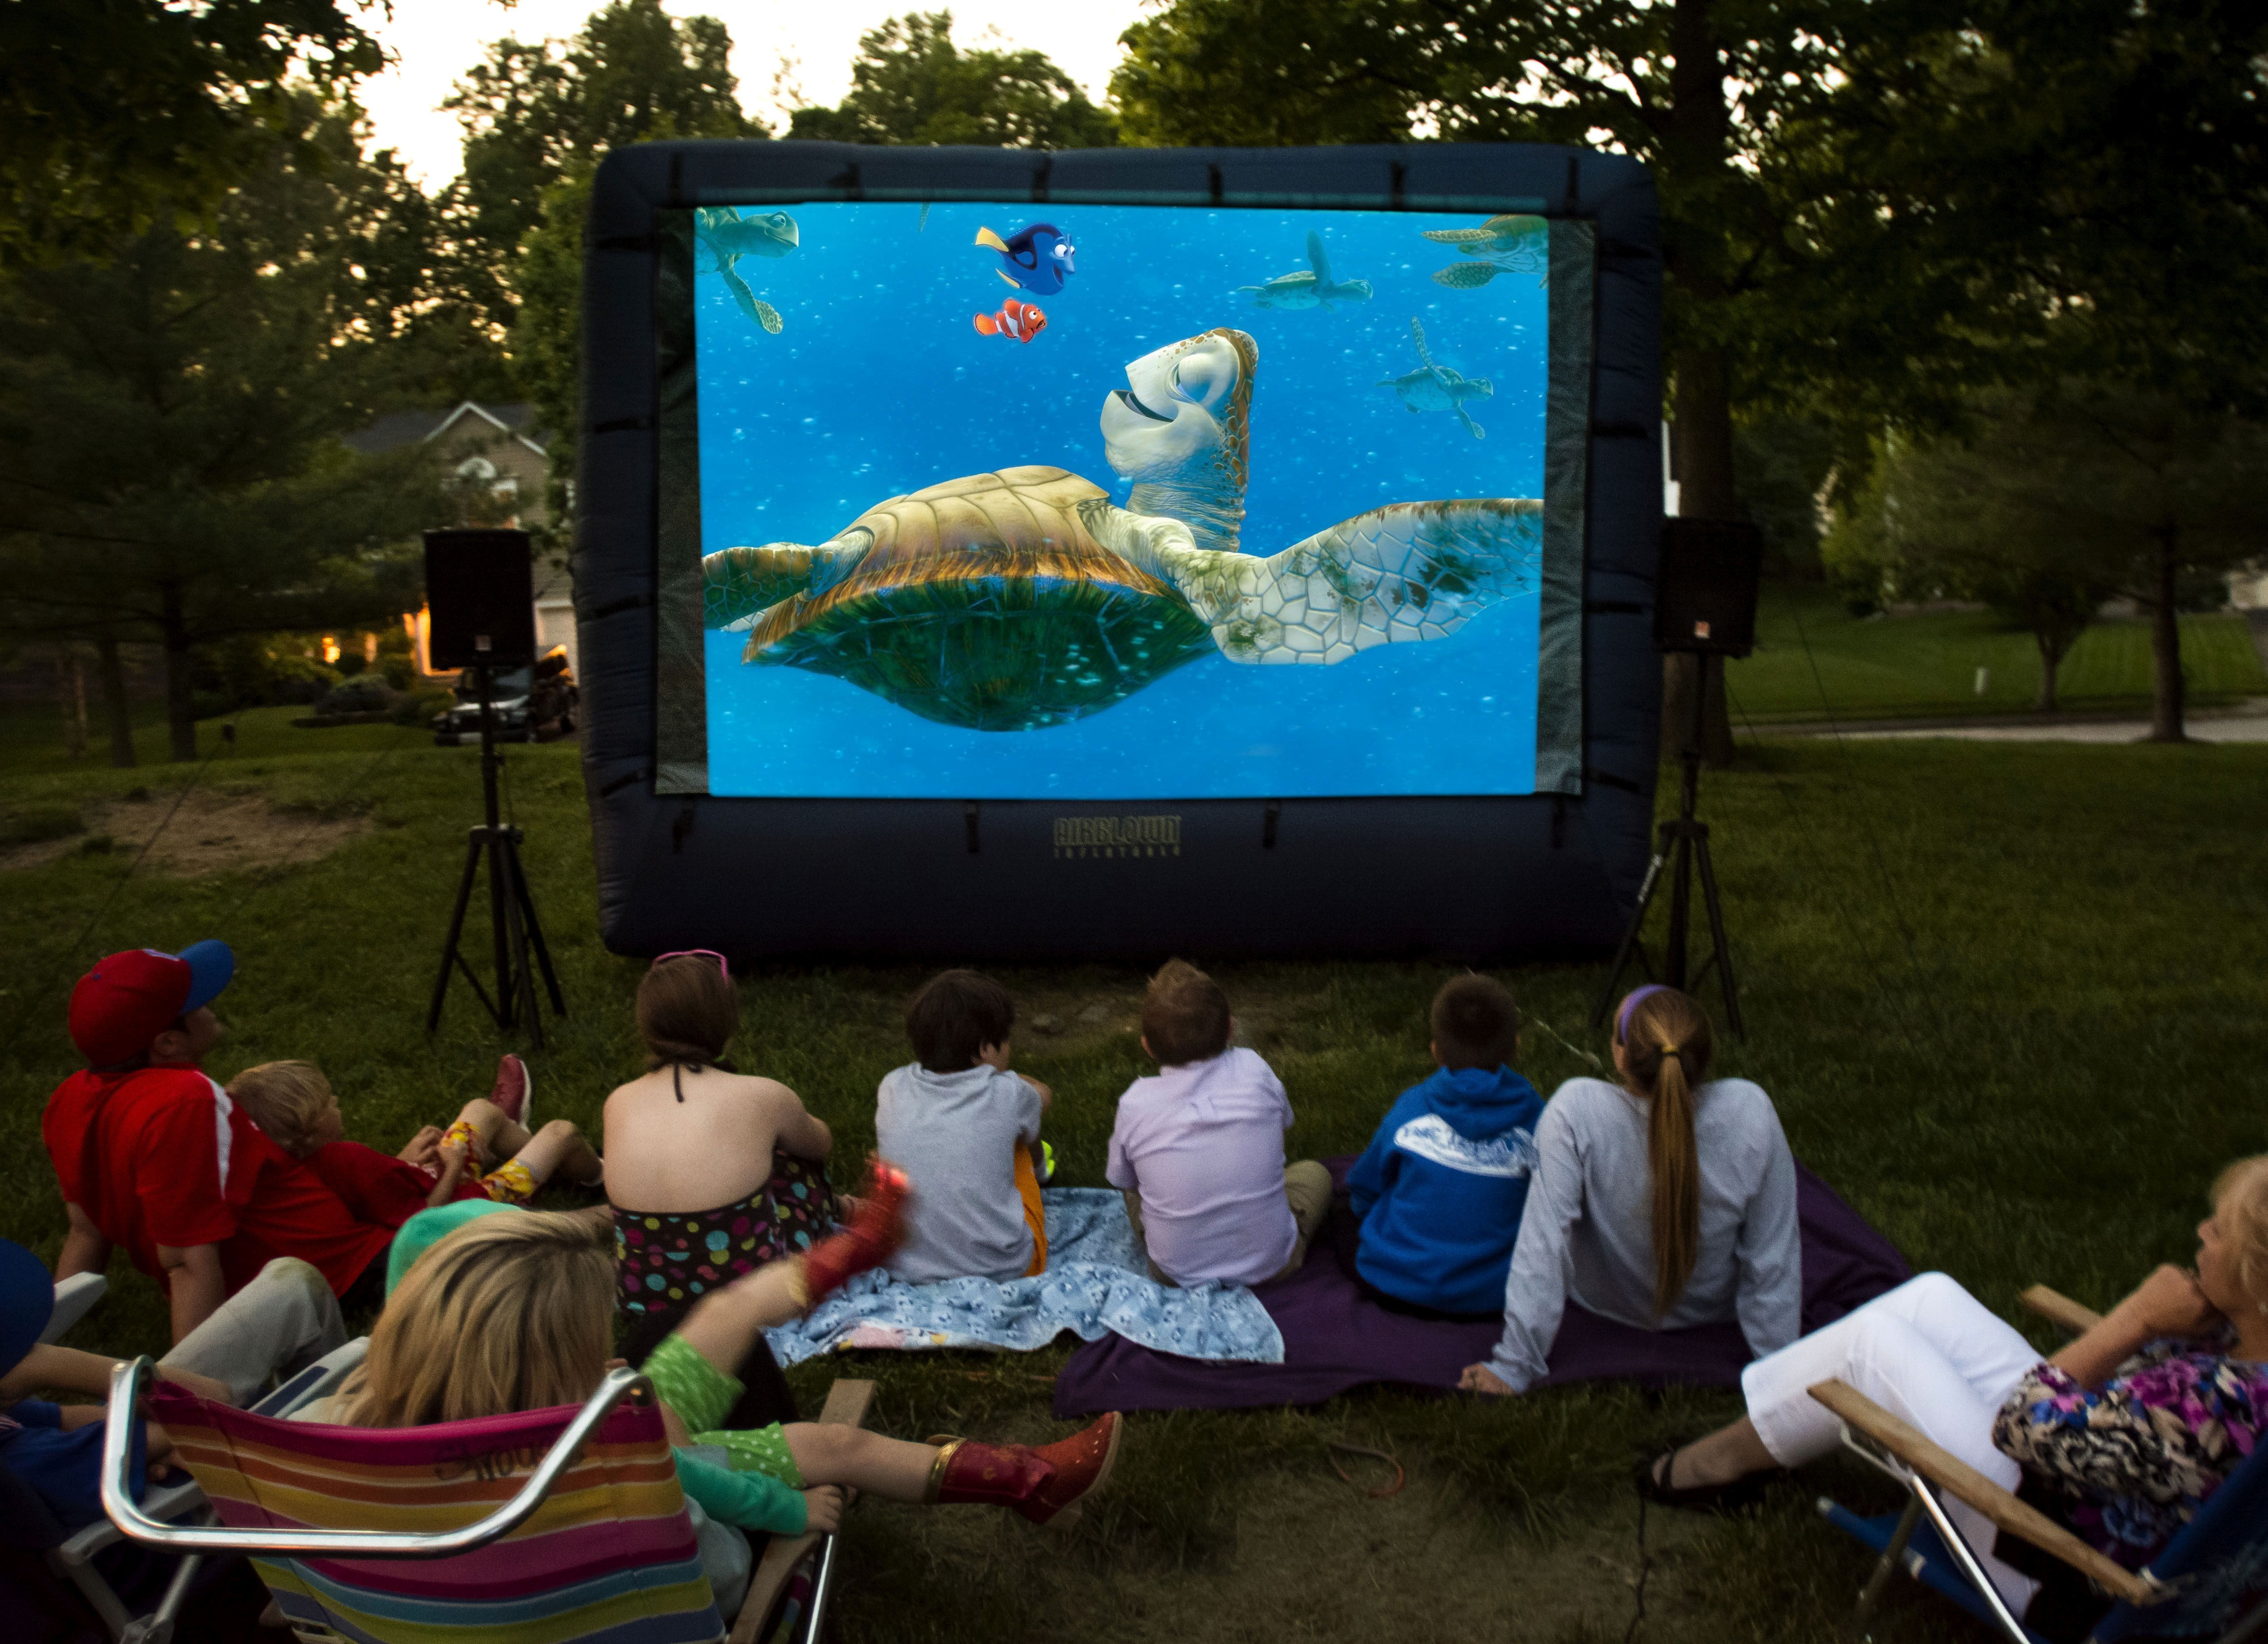 Attirant Backyard Inflatable Movie Screen Rentals   Http://www.KIDflatables.com